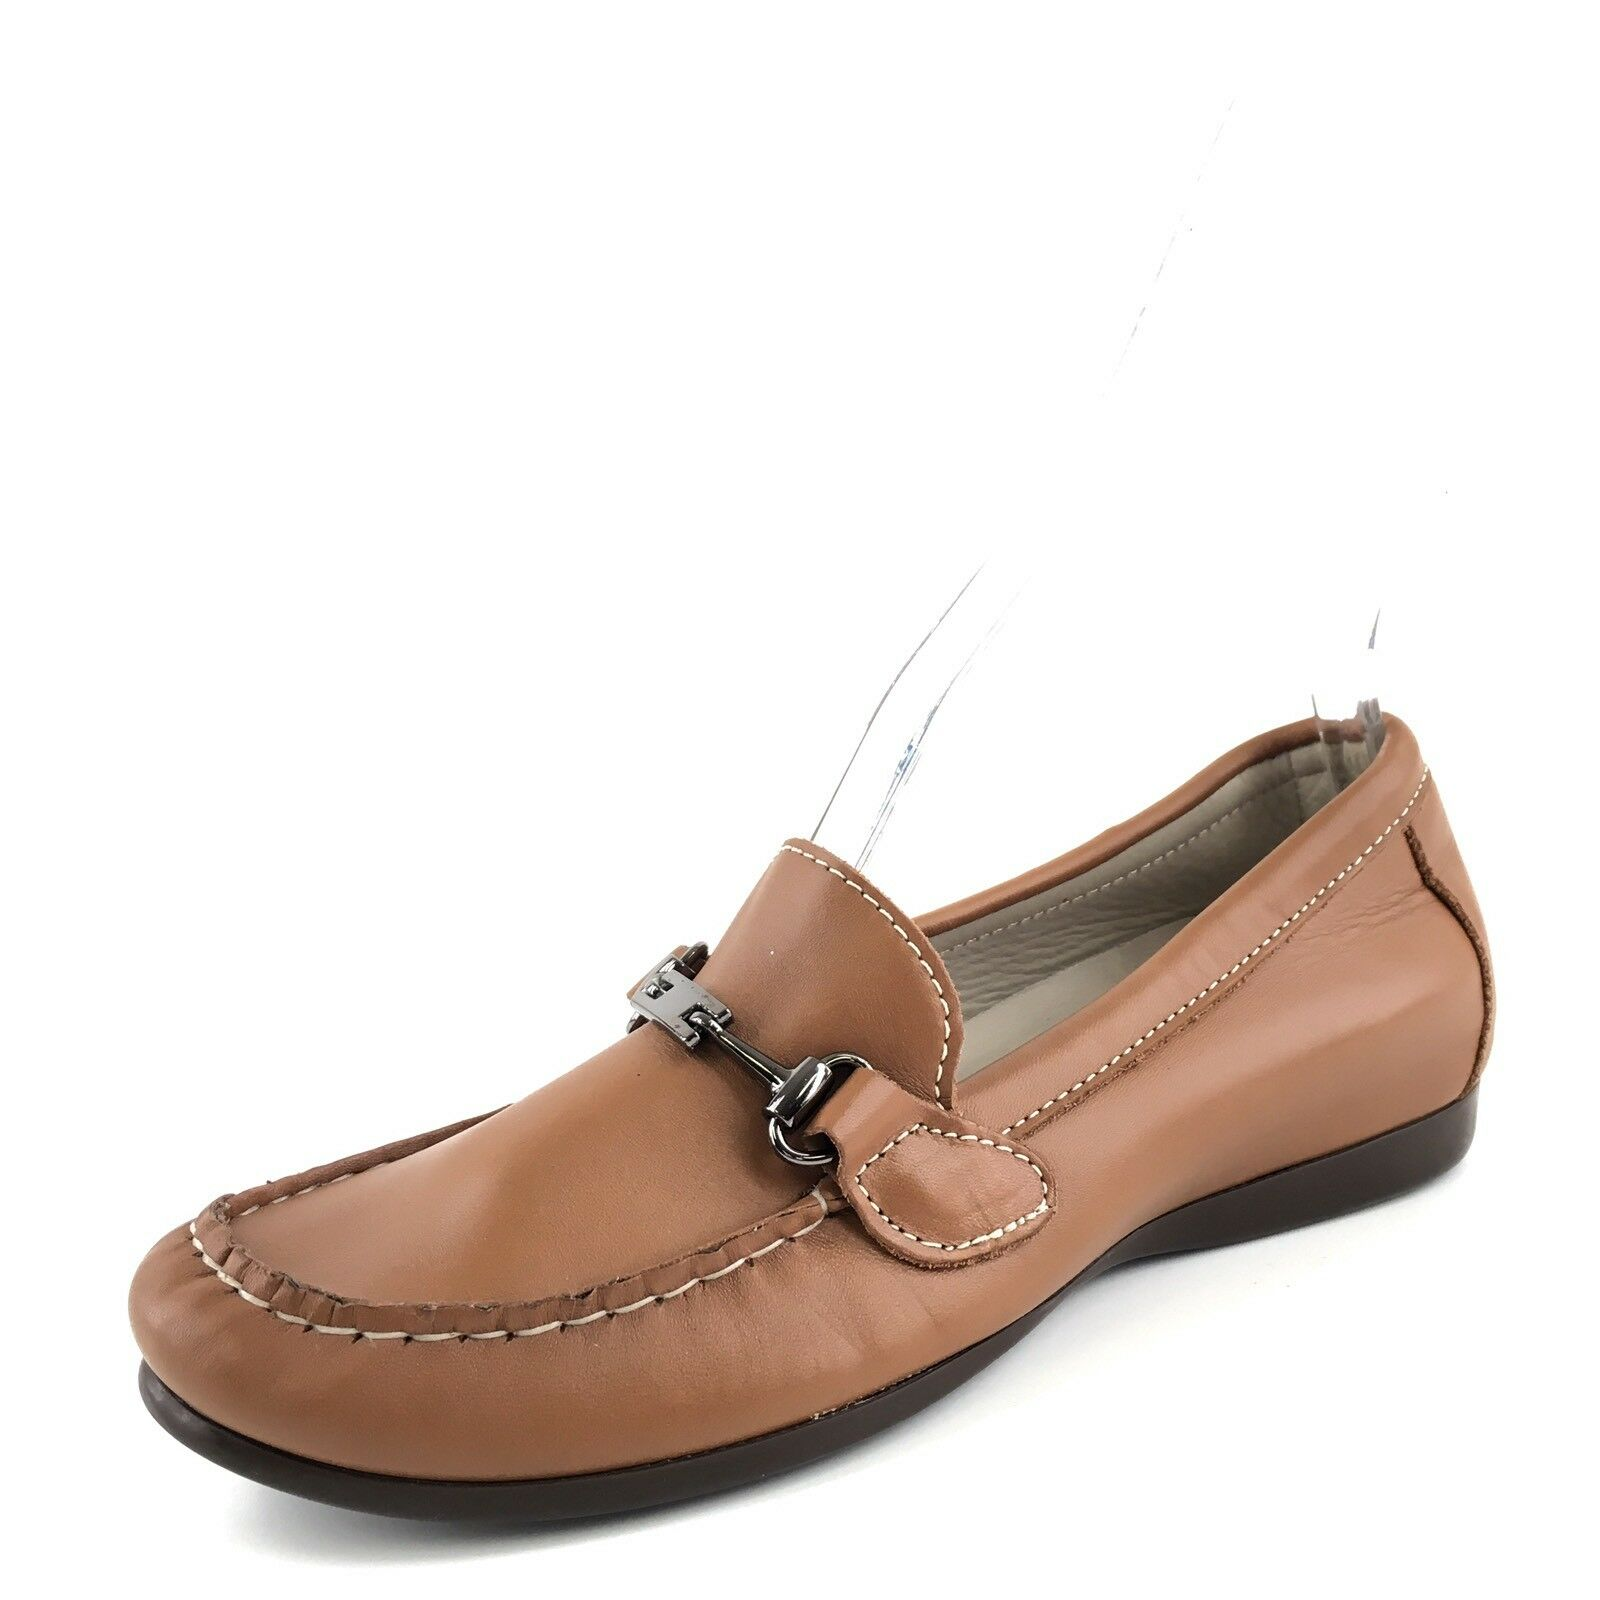 New Munro American Women's Brown Leather KIMI Horse Bit Loafers Size 5.5 M*